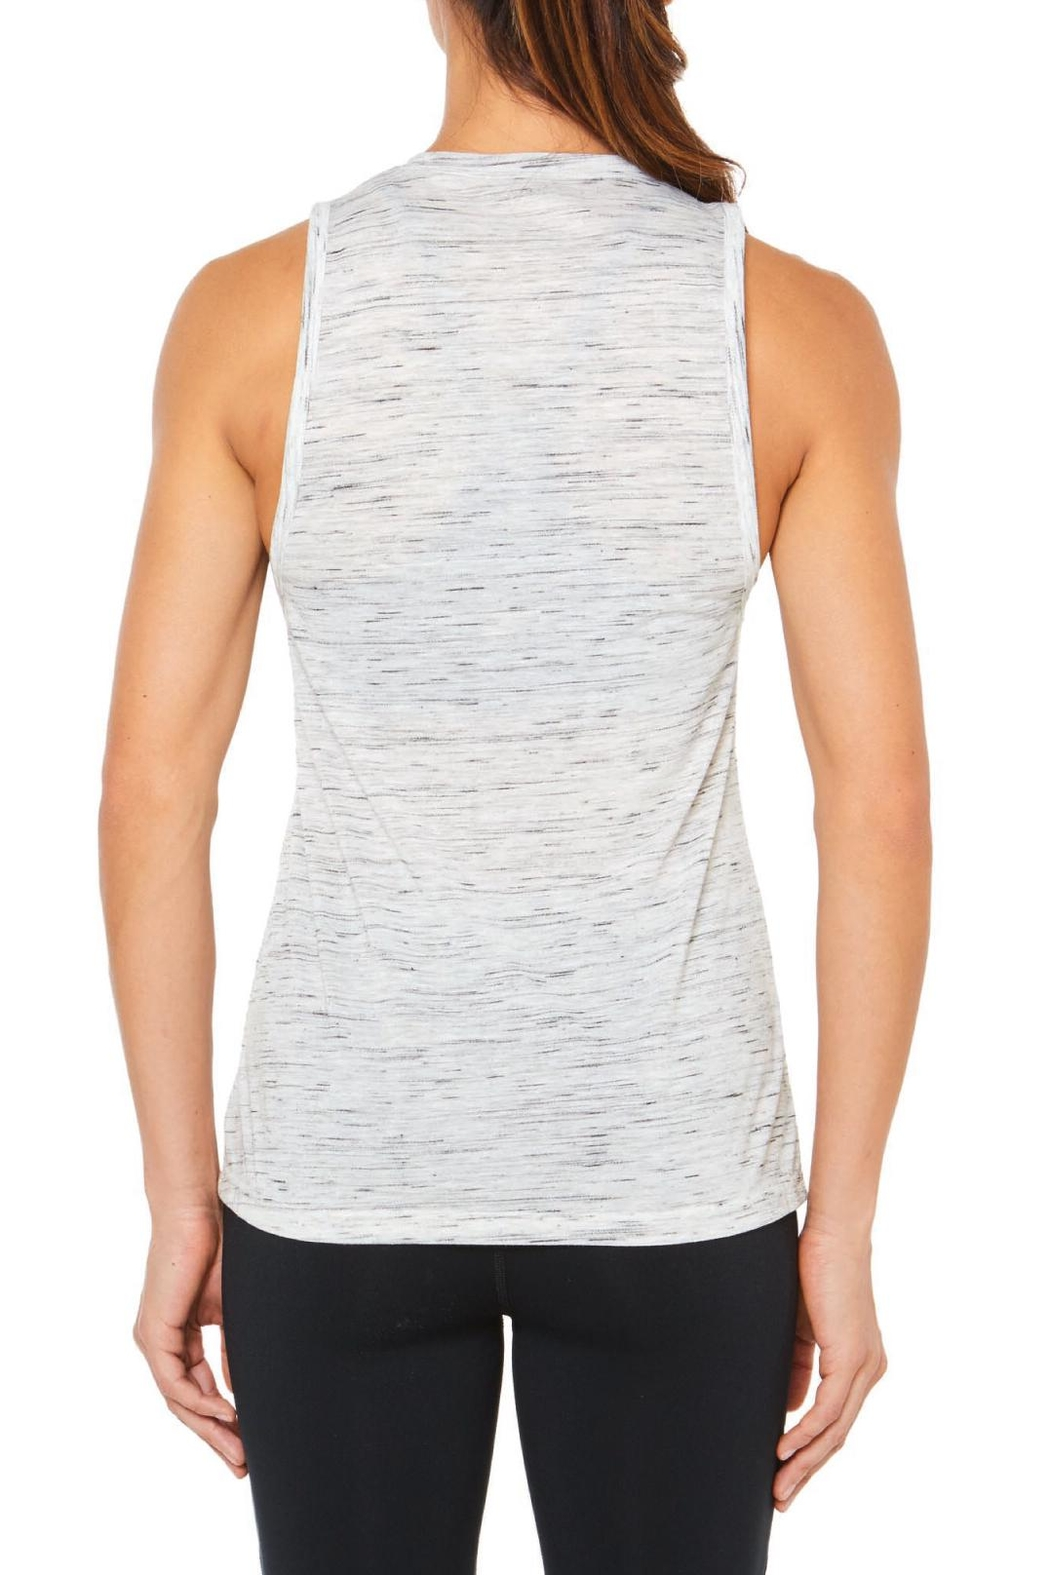 SHAPE Activewear Tank Top - Front Full Image